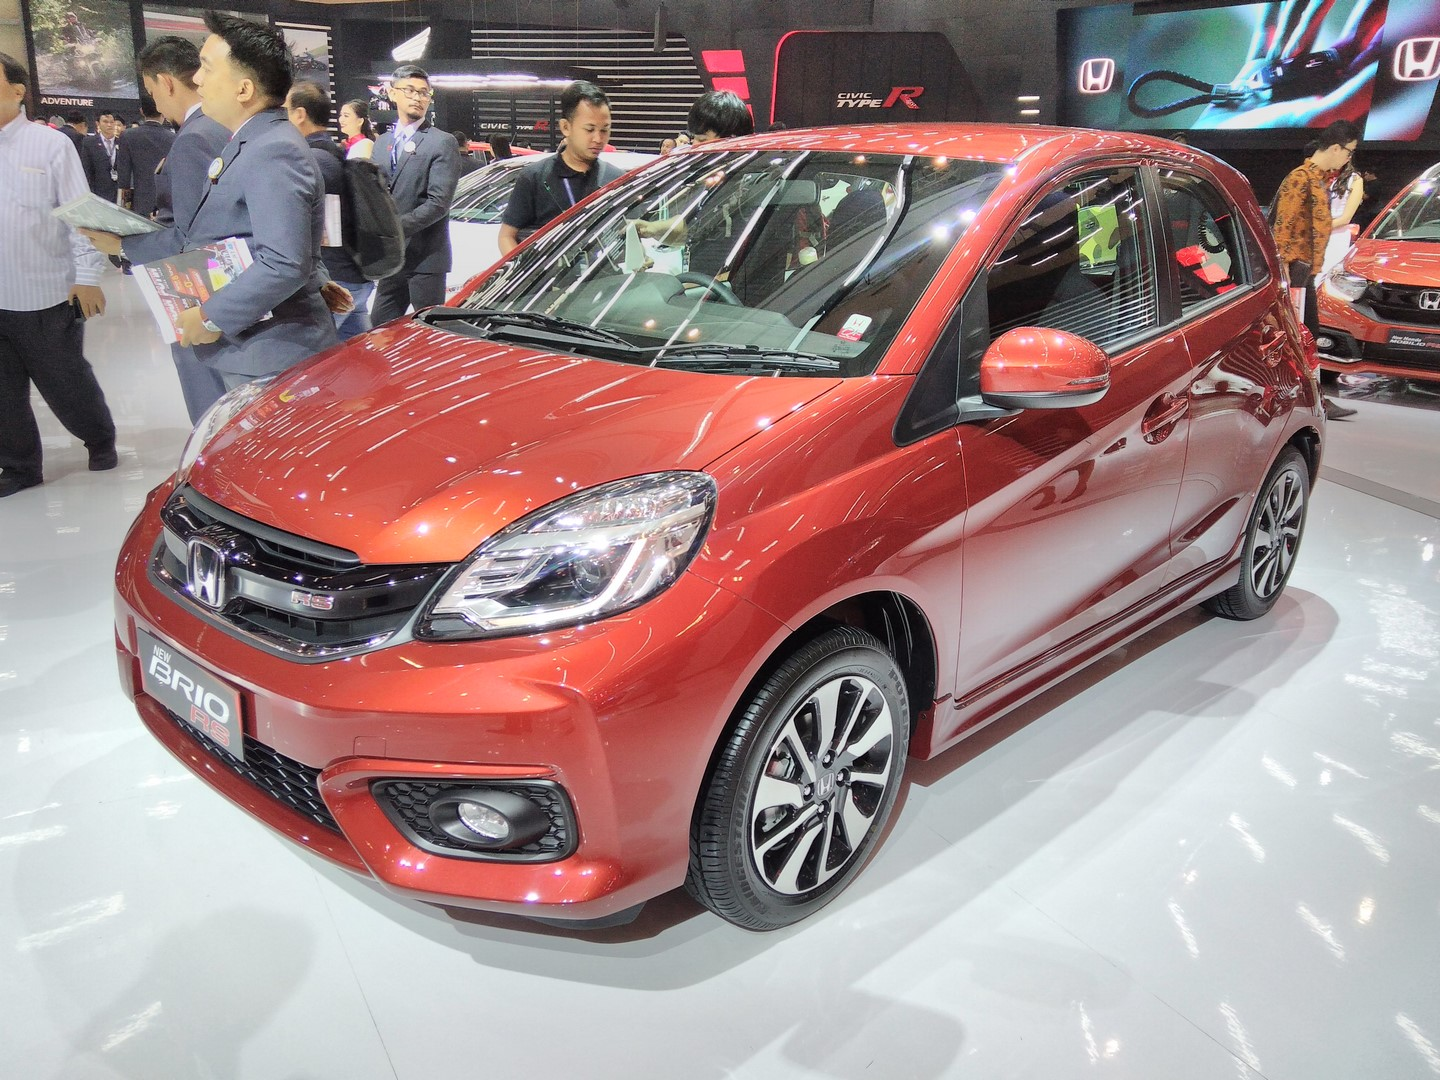 GIIAS 2017: Honda Brio RS and Mobilio RS 1